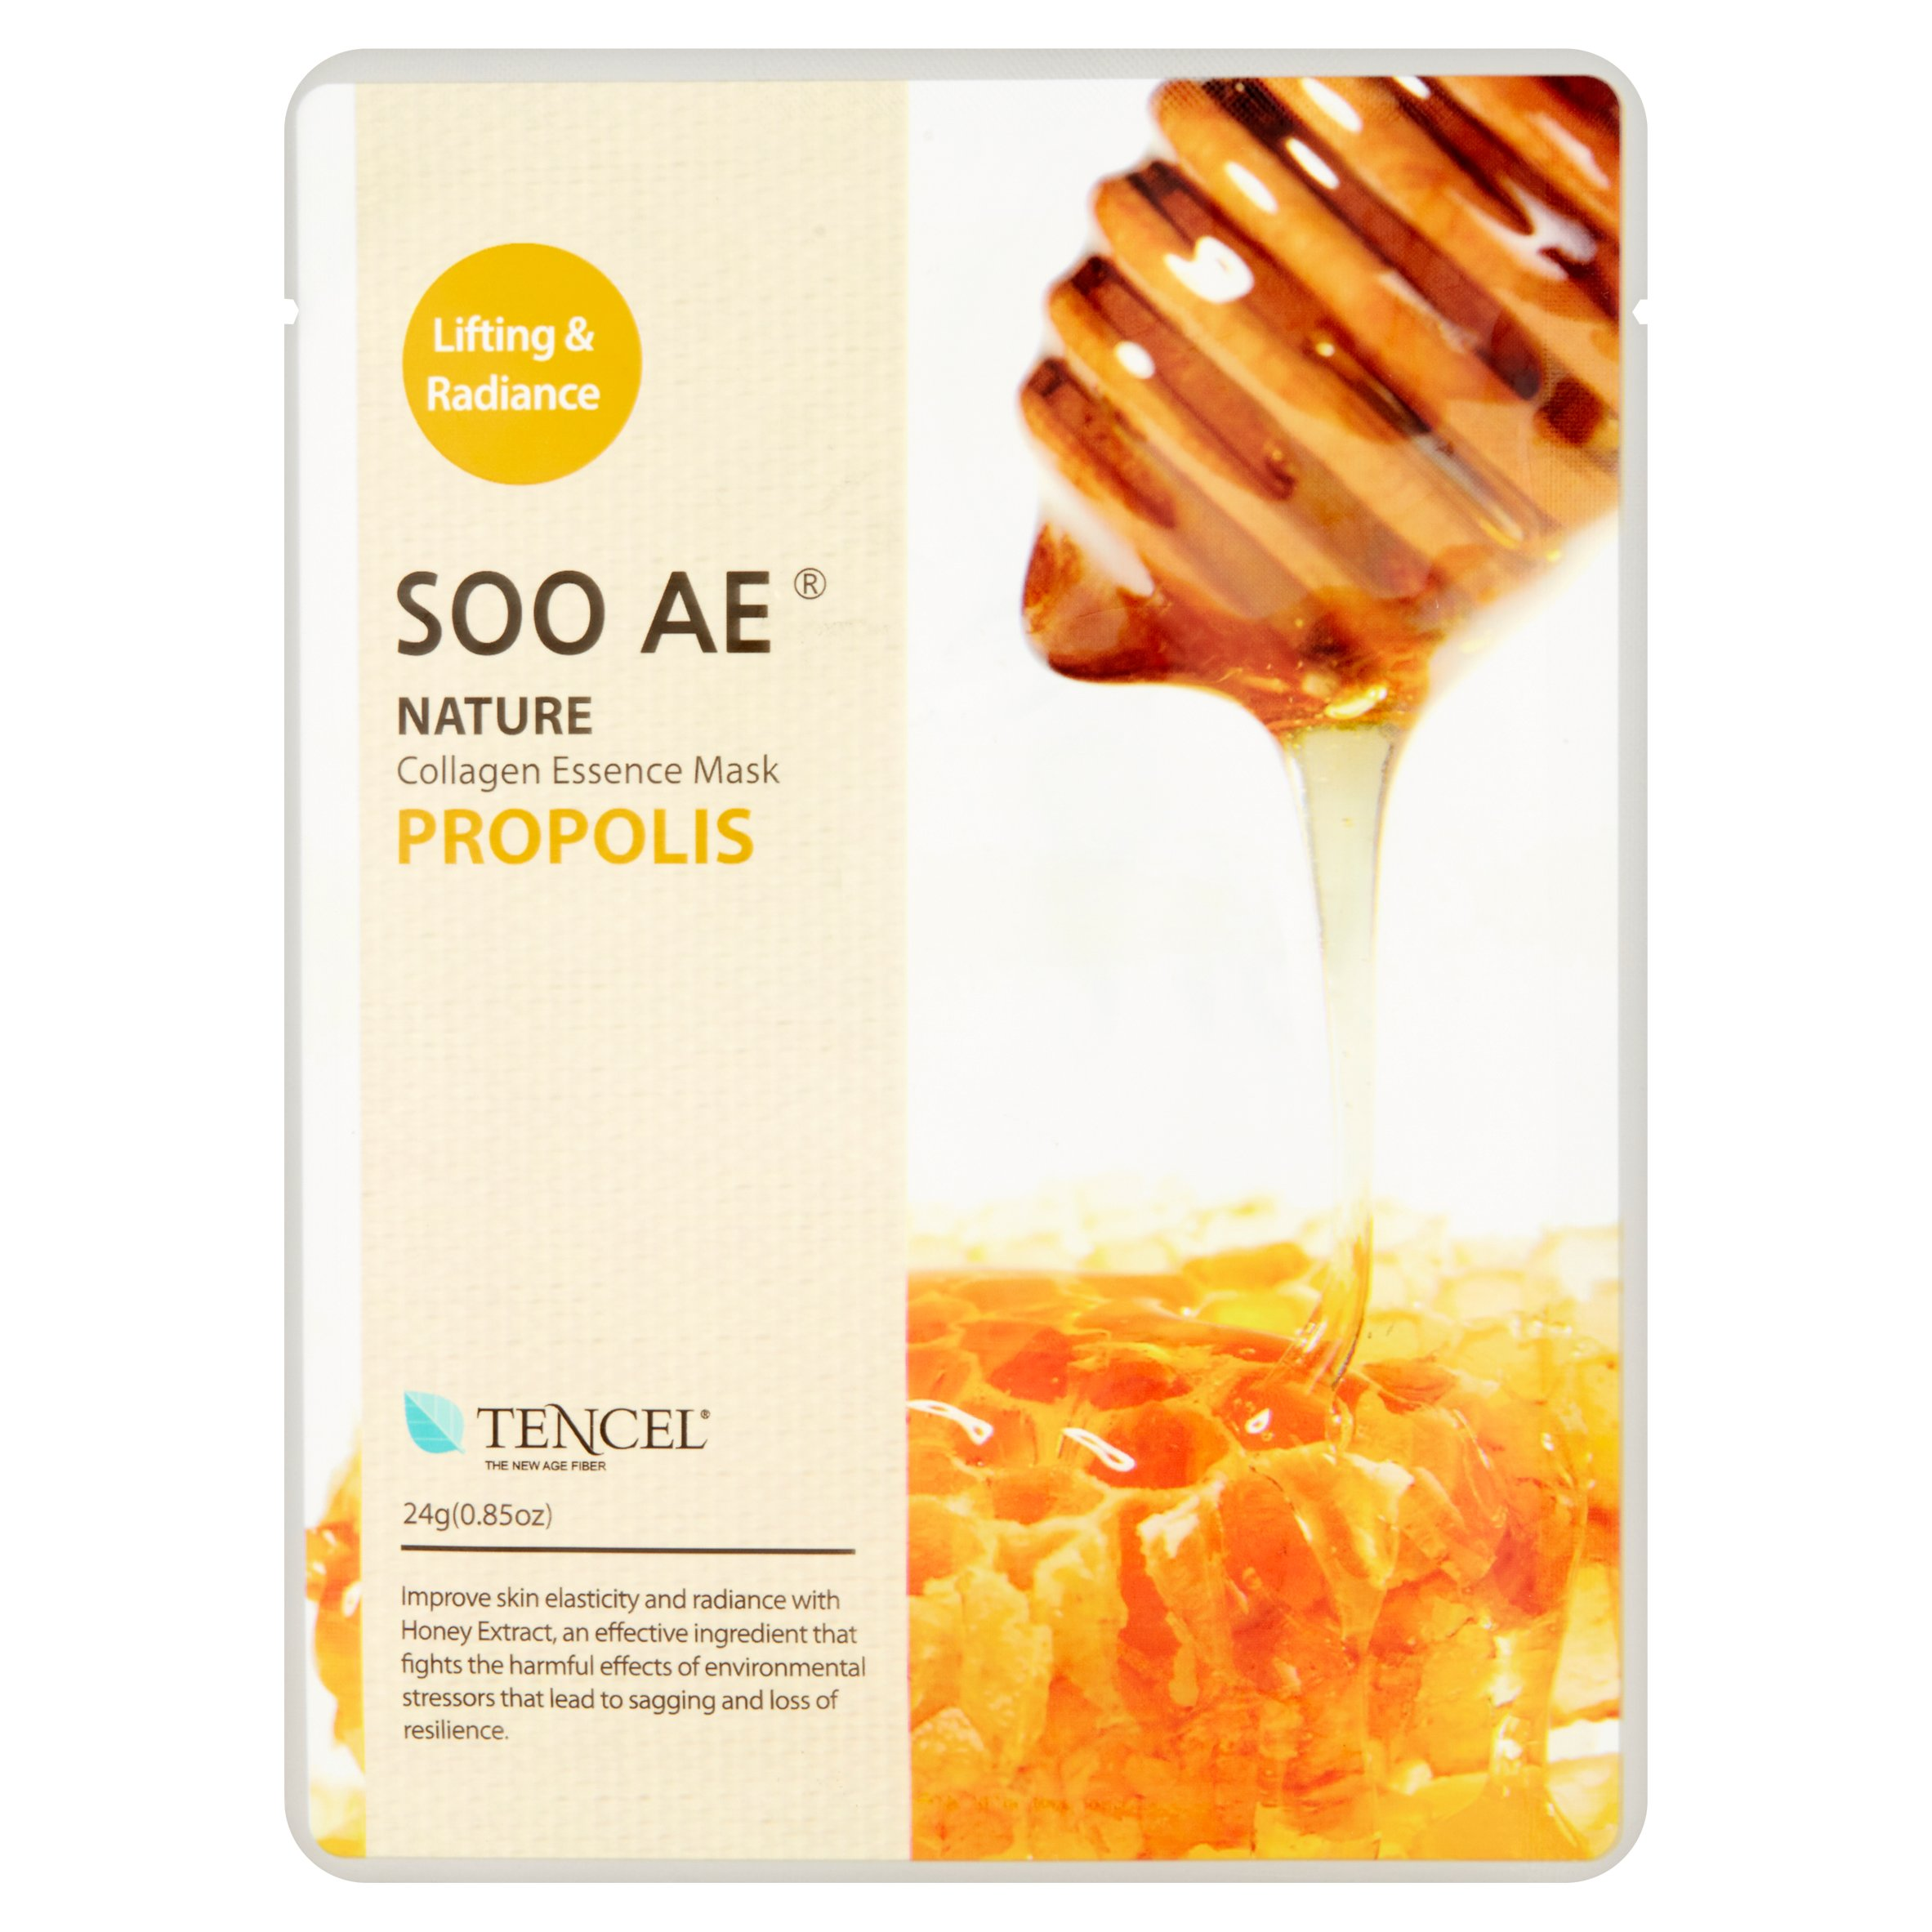 Soo Ae Nature Propolis Collagen Essence Mask, 0.85 oz